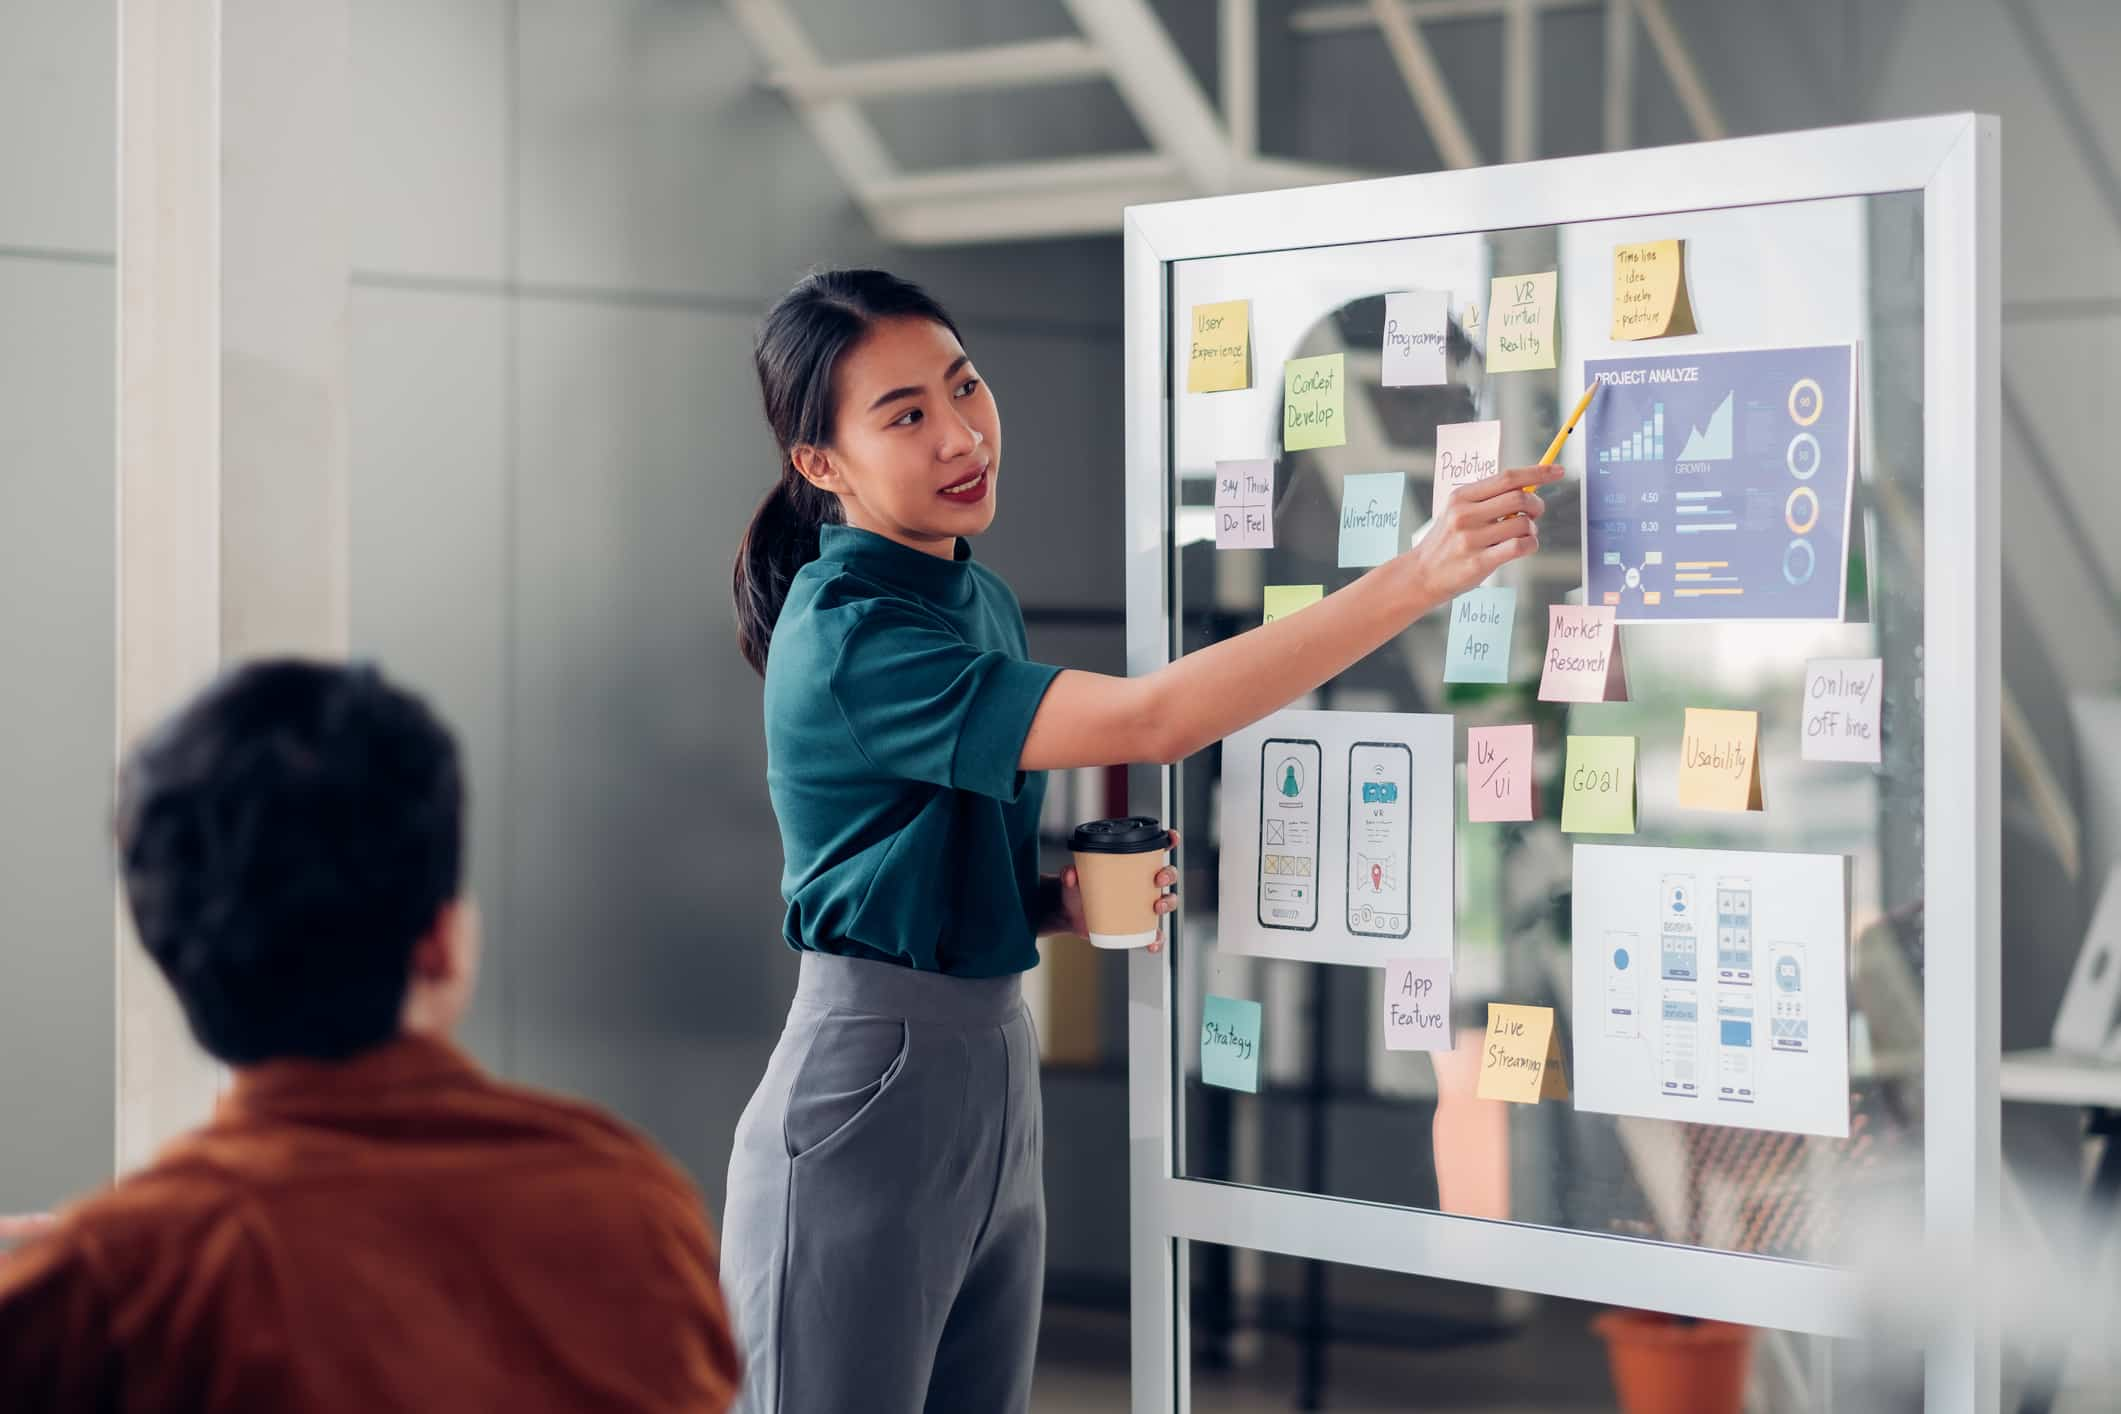 woman working on the board for digital transformation